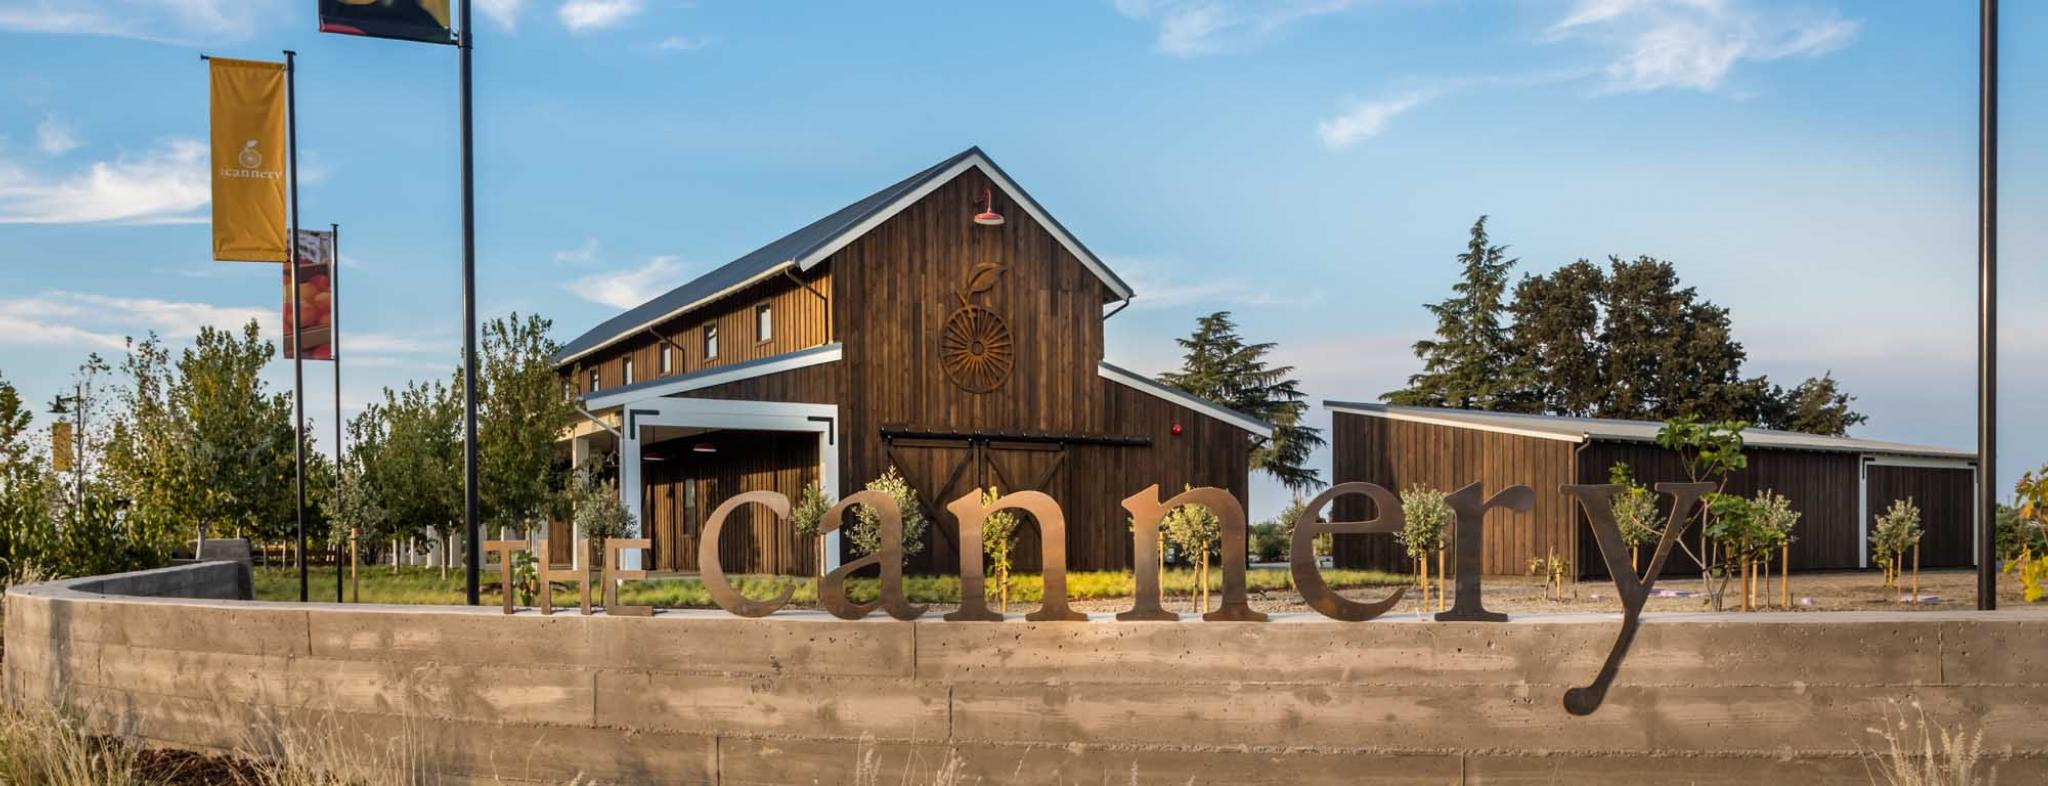 The New Home Company Wins Top Honor with Residential Housing Community of the Year at 2016 Gold Nugget Awards at PCBC in San Francisco